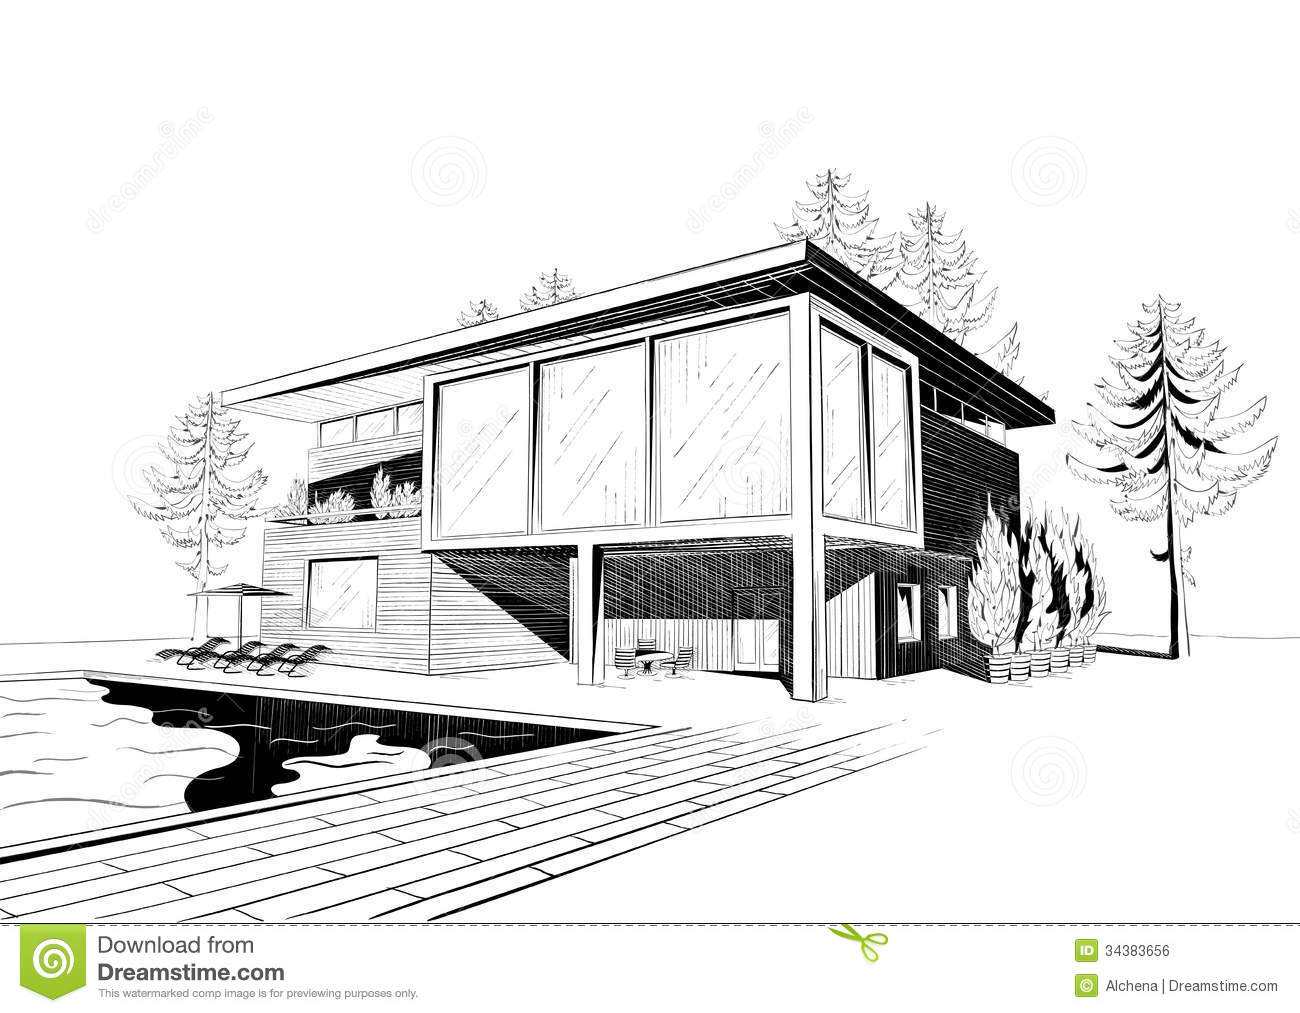 Top 2012 Mid Century Modern Homes Sold besides Sketchup additionally Two Modern Mansions On Sunset Plaza Drive In La additionally Royalty Free Stock Image Vector Background Modern House Swimming Black White Sketch Suburban Wooden Swimmingpool Chaise Lounges Image34383656 as well Yorkville Penthouse 07 2. on mid century modern house renderings